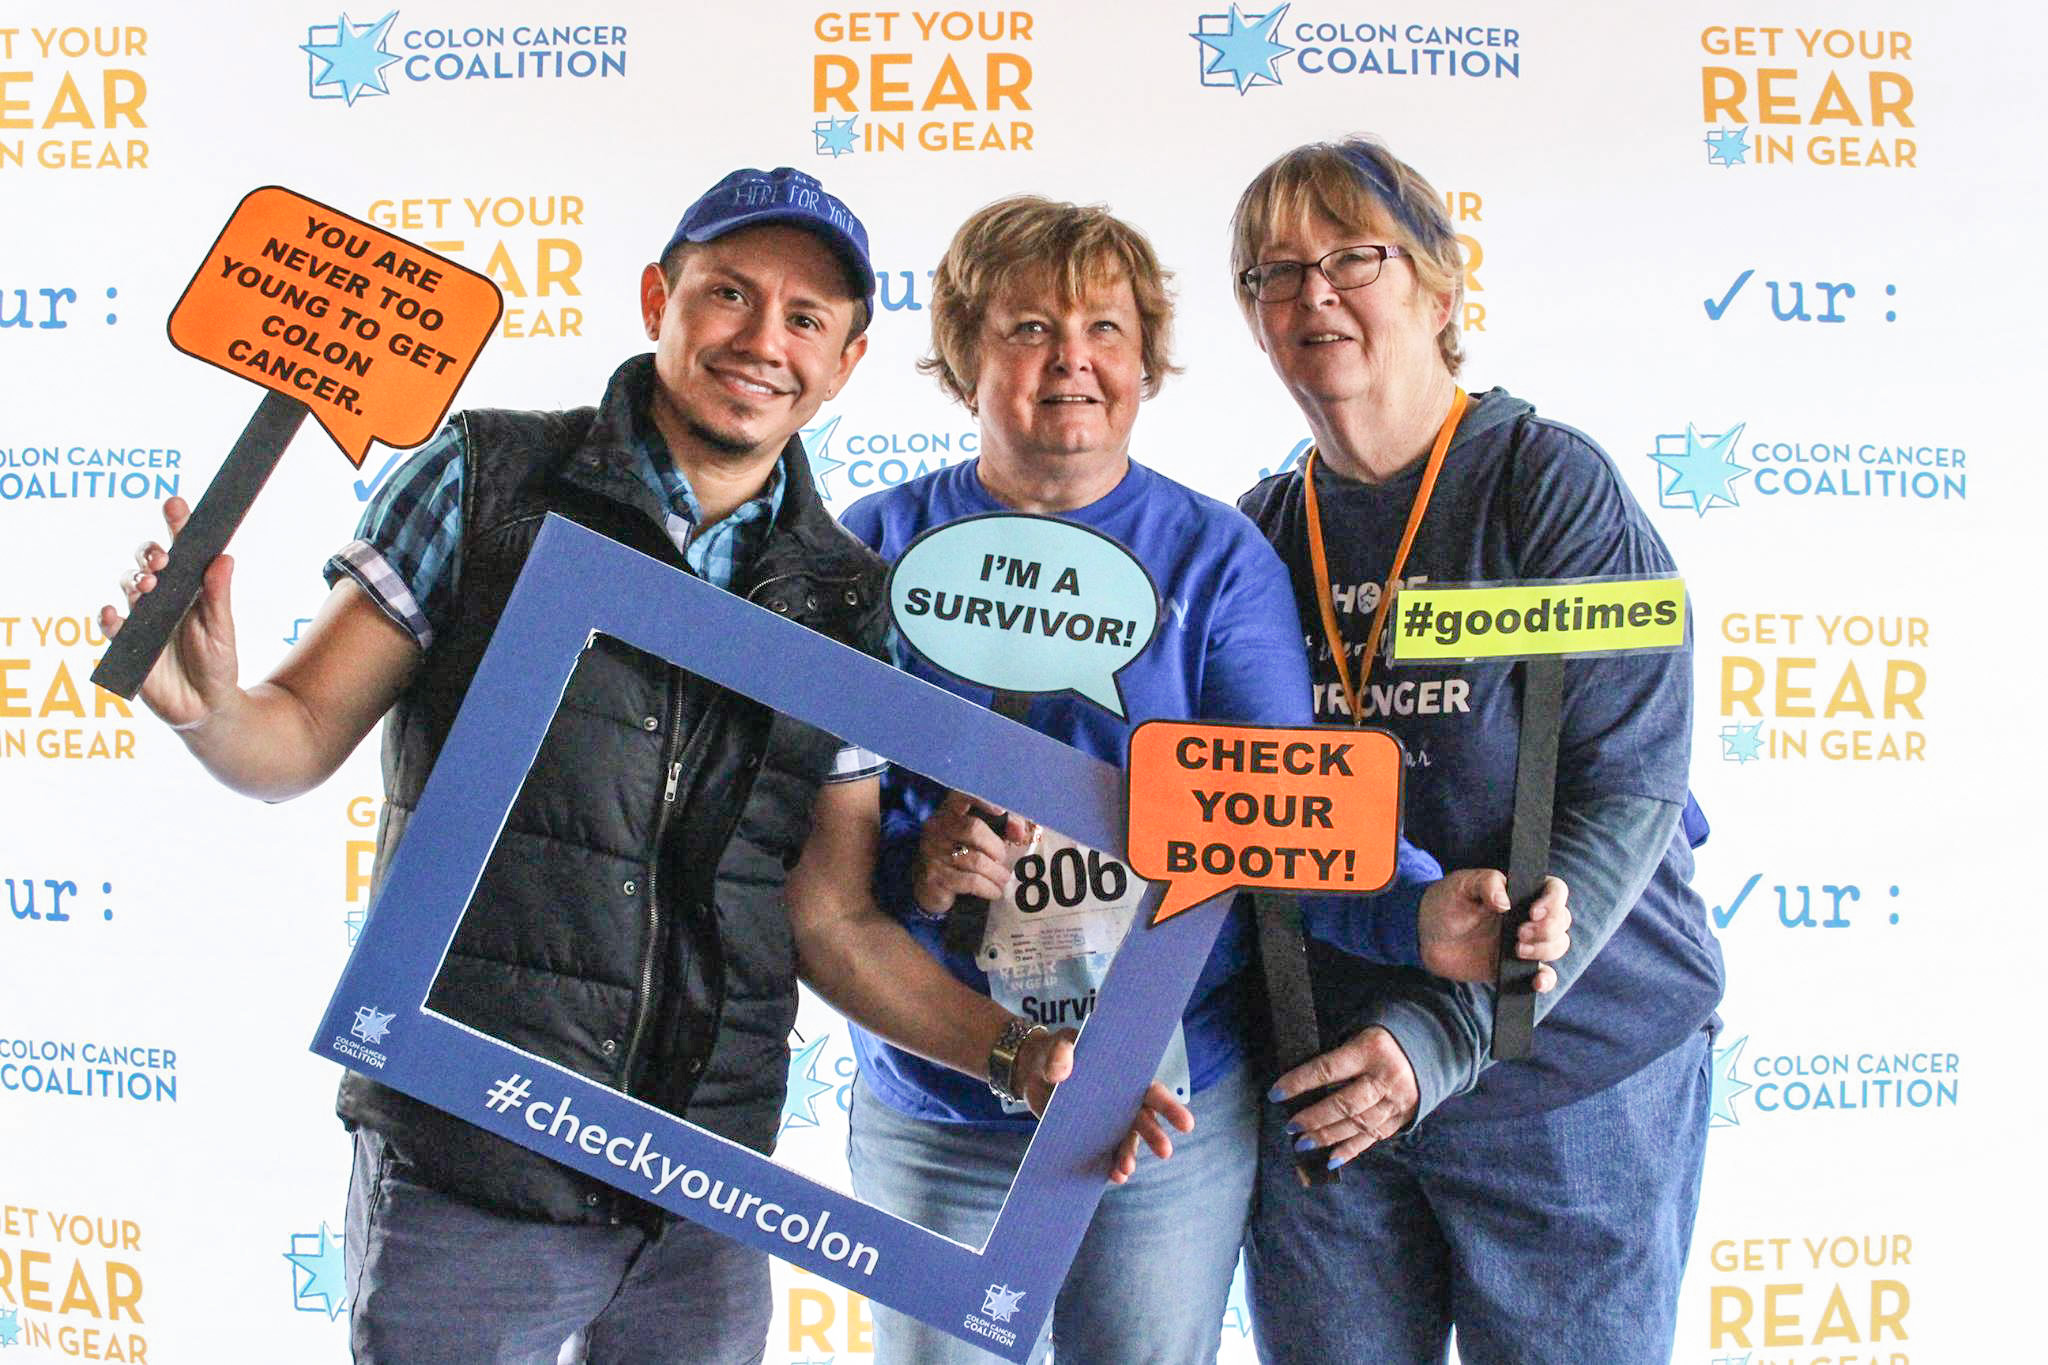 Colontown Leaders at Get Your Rear in Gear